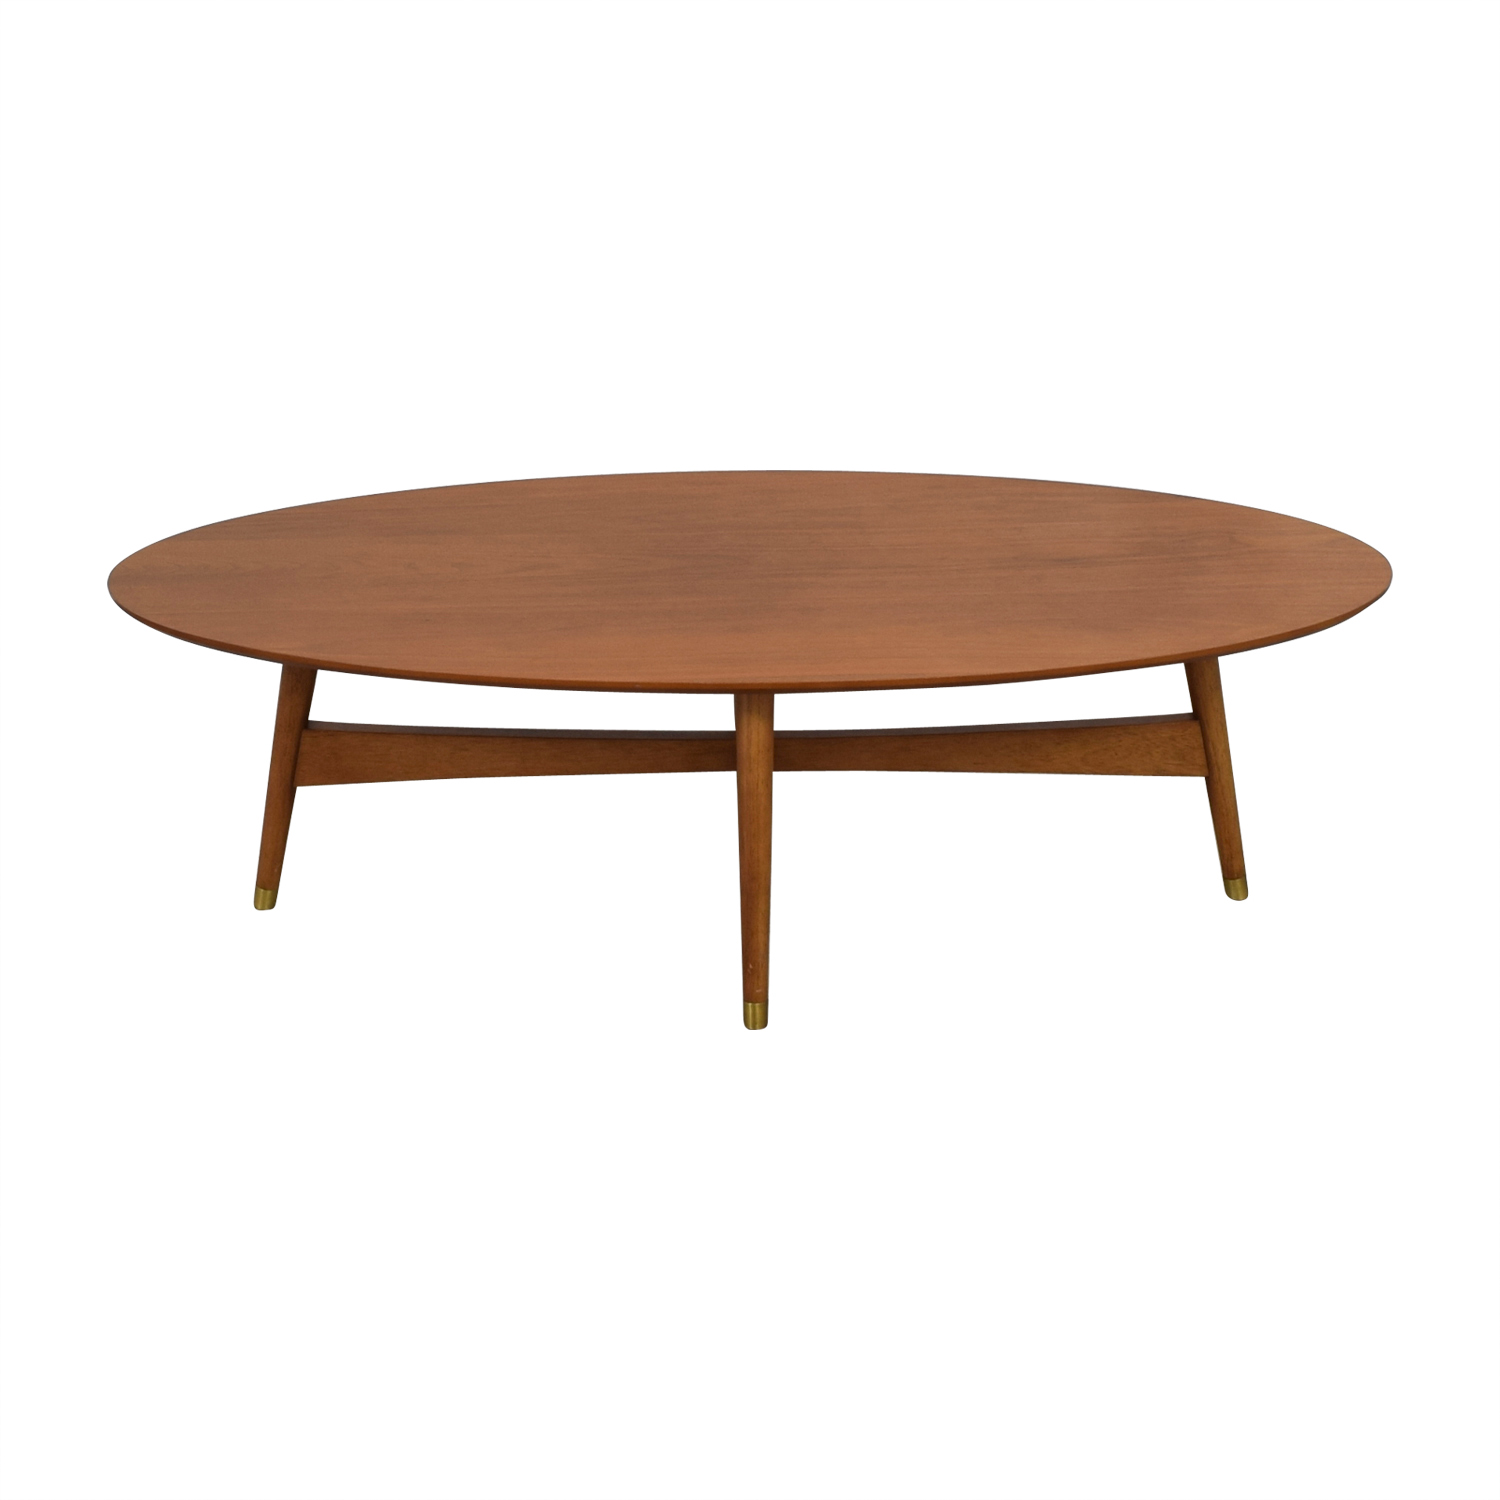 West Elm Reeve Pecan Oval Coffee Table / Tables